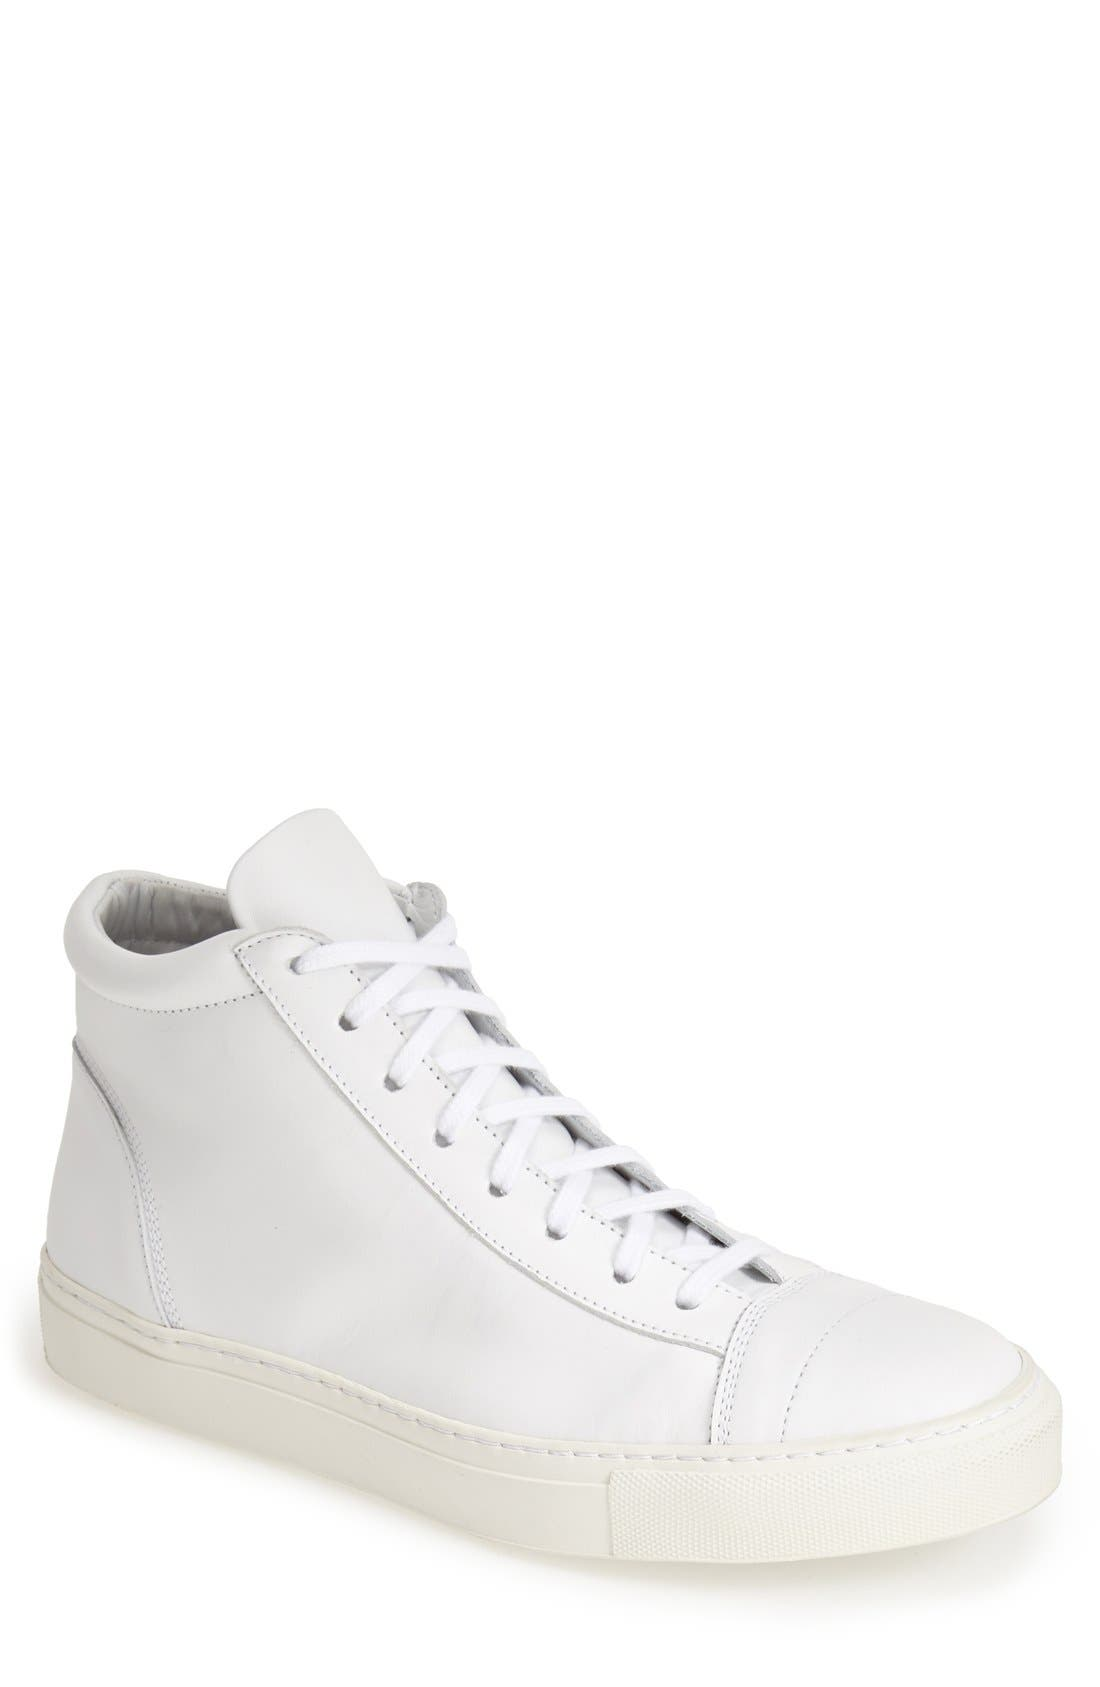 'Jorge' Leather Sneaker,                             Main thumbnail 1, color,                             100